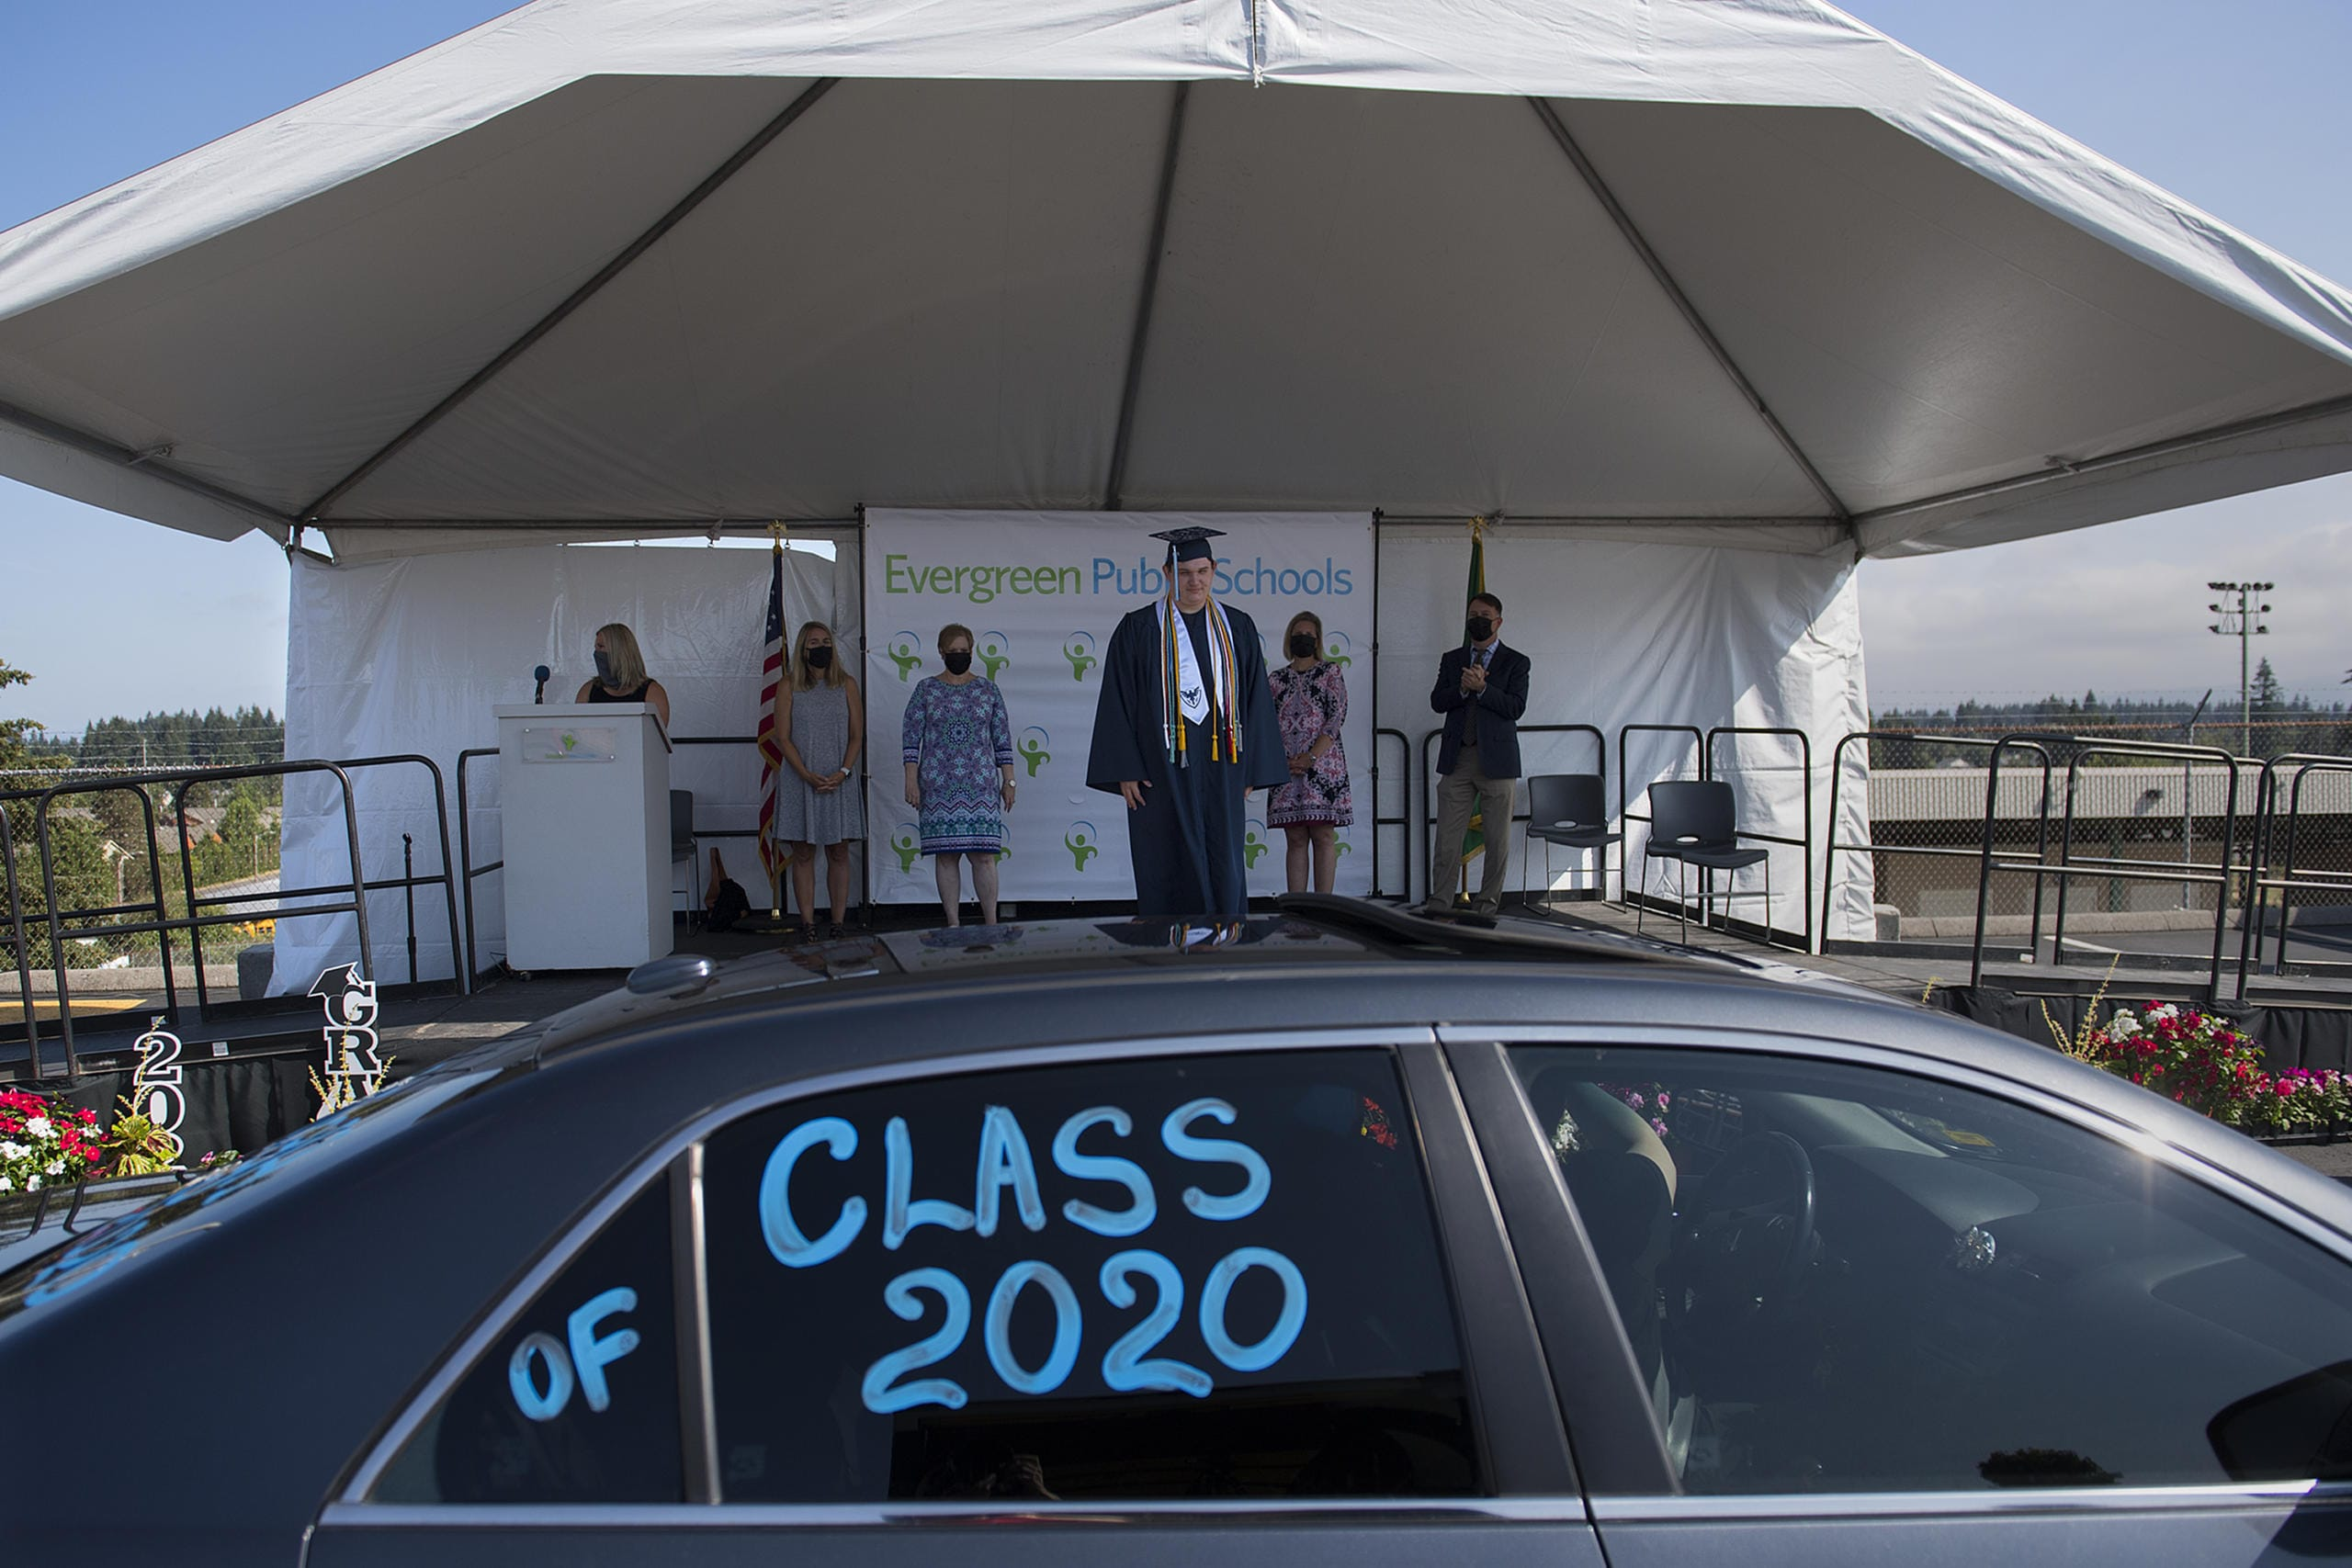 Ilya Panasevich, 18, graduate of Henrietta Lacks Health and Bioscience High School, takes center stage as he pauses to have his photograph taken during a drive-through graduation ceremony for the class of 2020 at McKenzie Stadium on Wednesday morning, August 5, 2020. Panasevich was one of 147 graduates from HeLa High School this year. (Amanda Cowan/The Columbian)